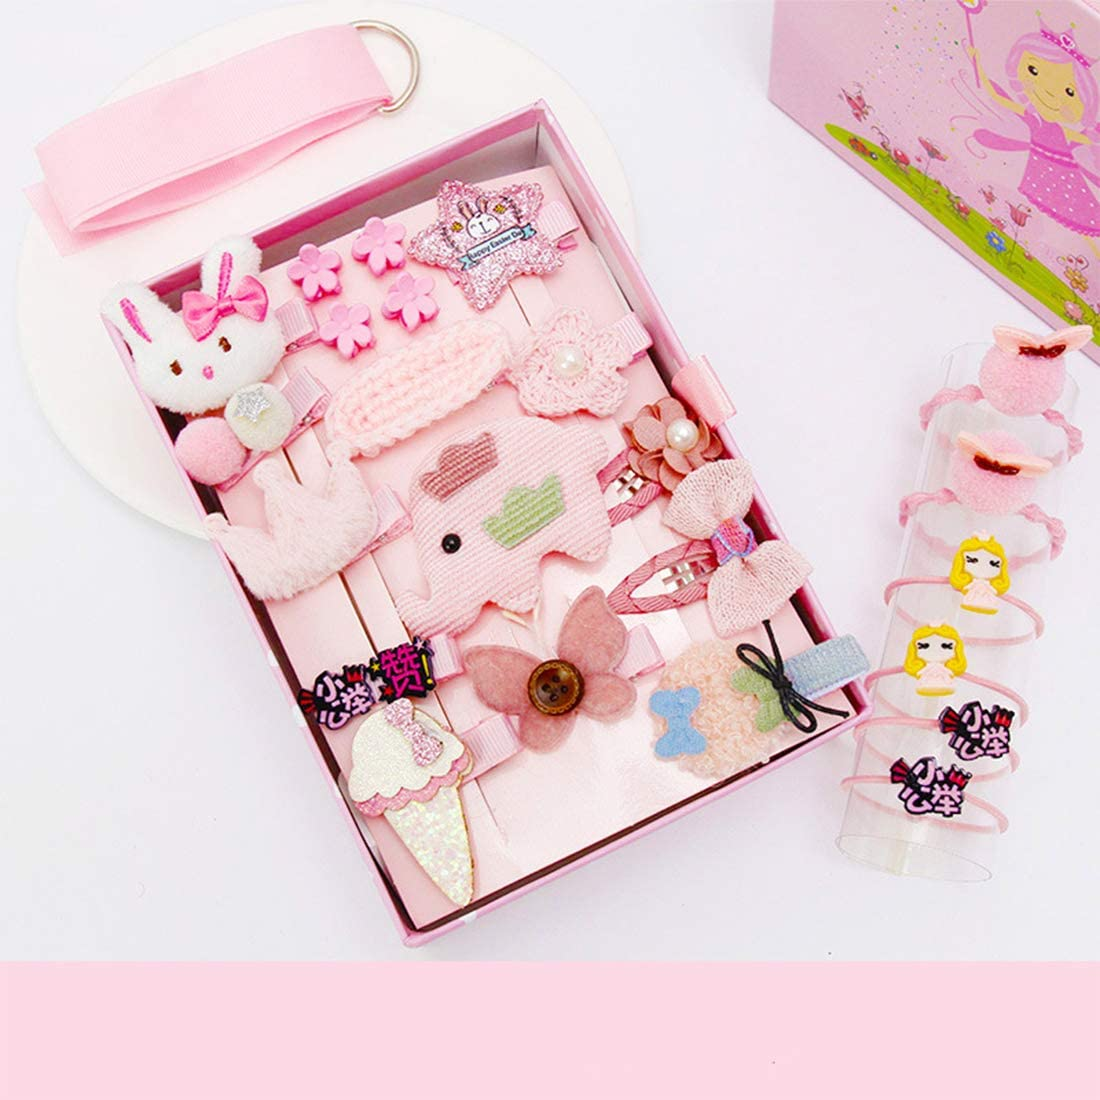 Snow & Sunny 24Pcs Gift Set Hair Accessories Hair Clips Bows Ties £3.99 w/code NICECLIP @ Amazon